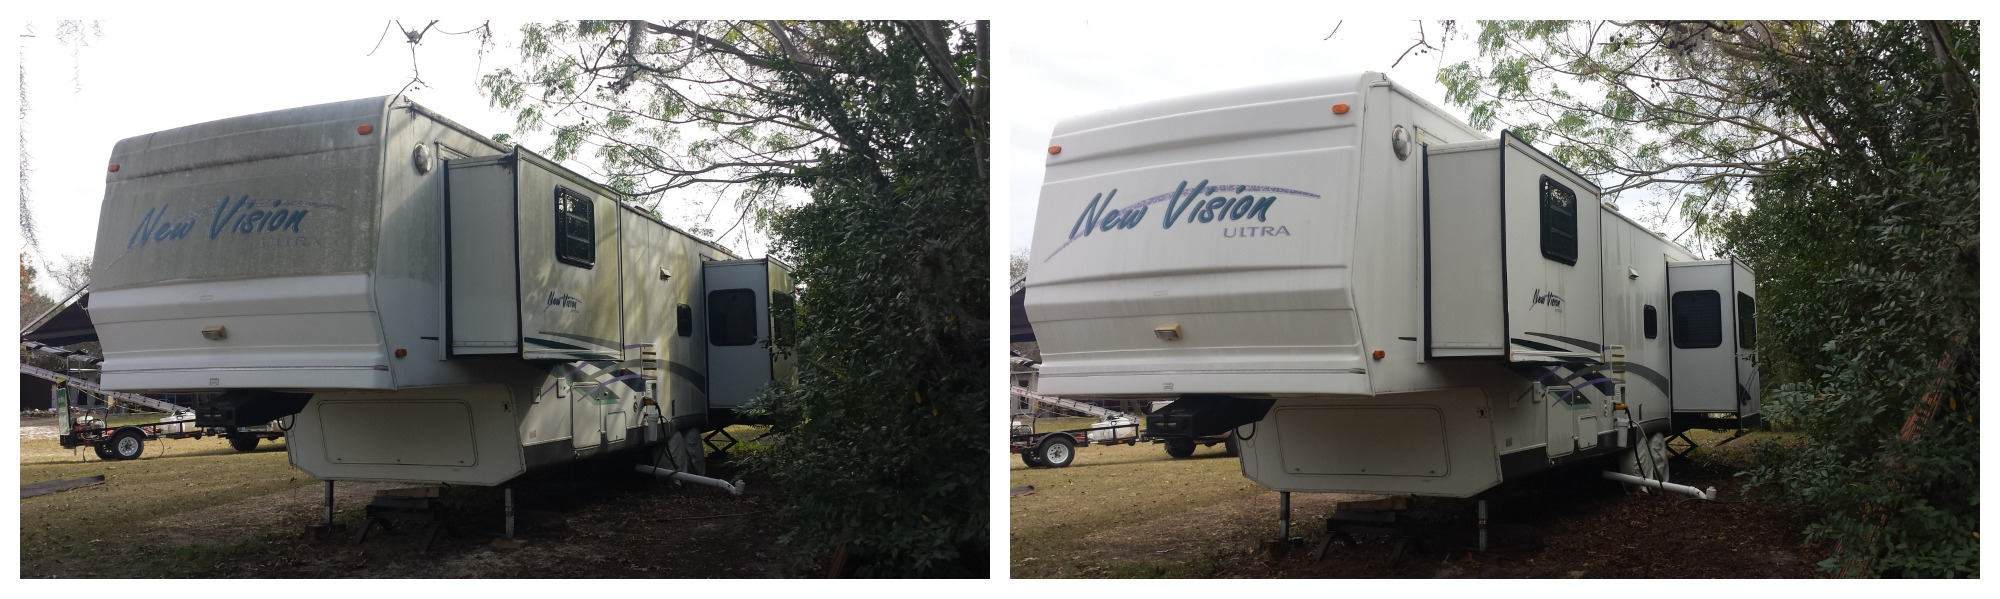 RV  washing